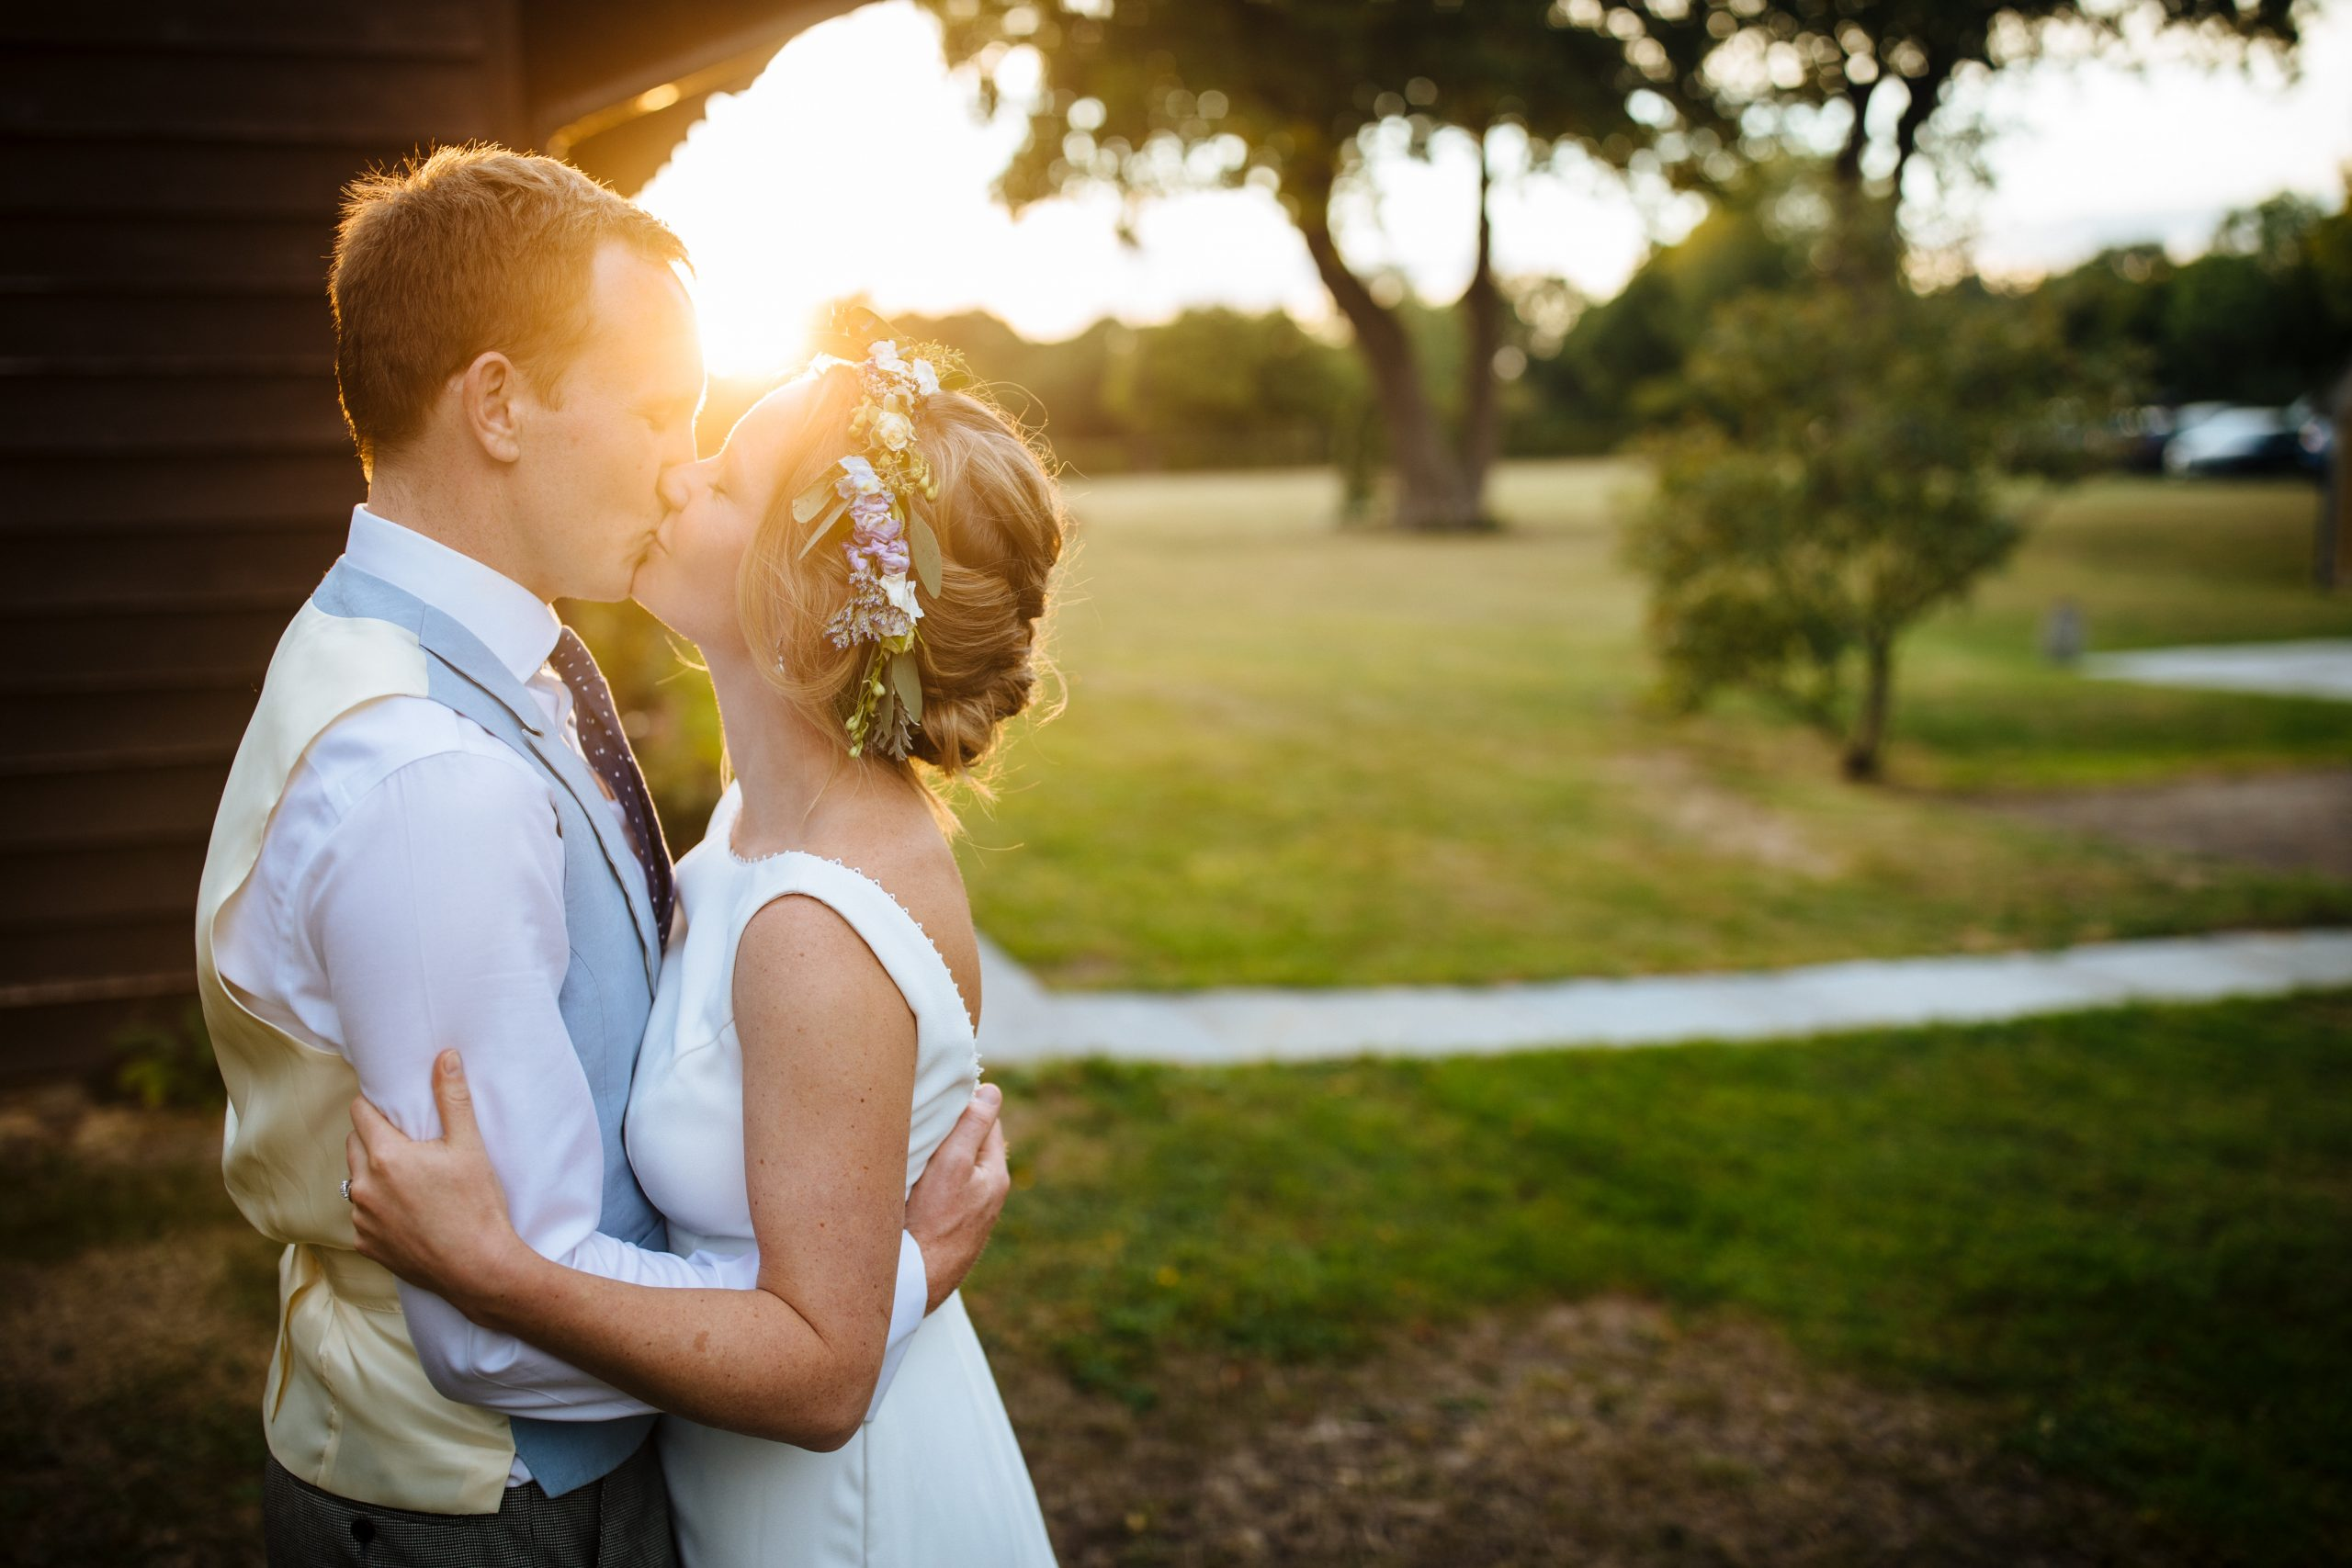 bride with flower crown kissing groom at sunset at Kent wedding